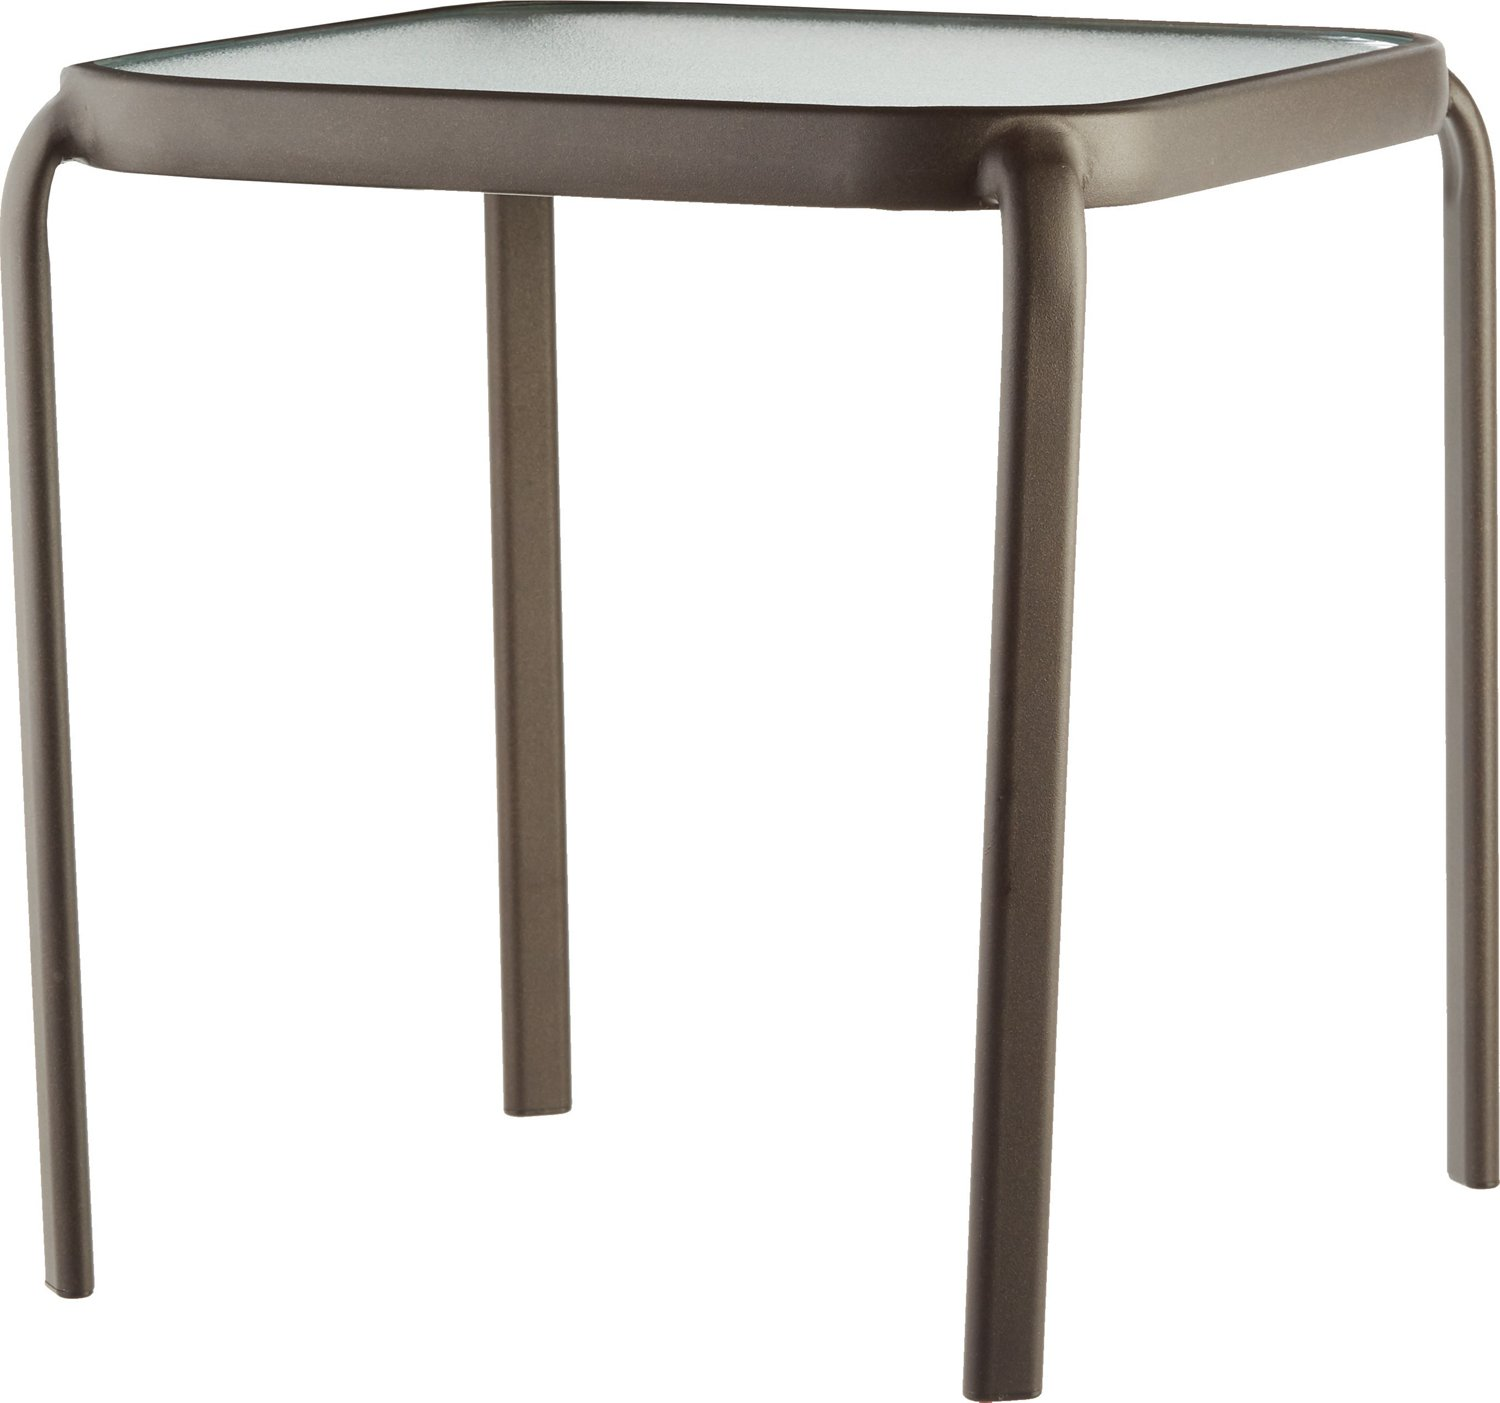 patio furniture academy middletown accent table display product reviews for mosaic side narrow chairside pub with chairs small end tables target folding glass coffee desk outdoor